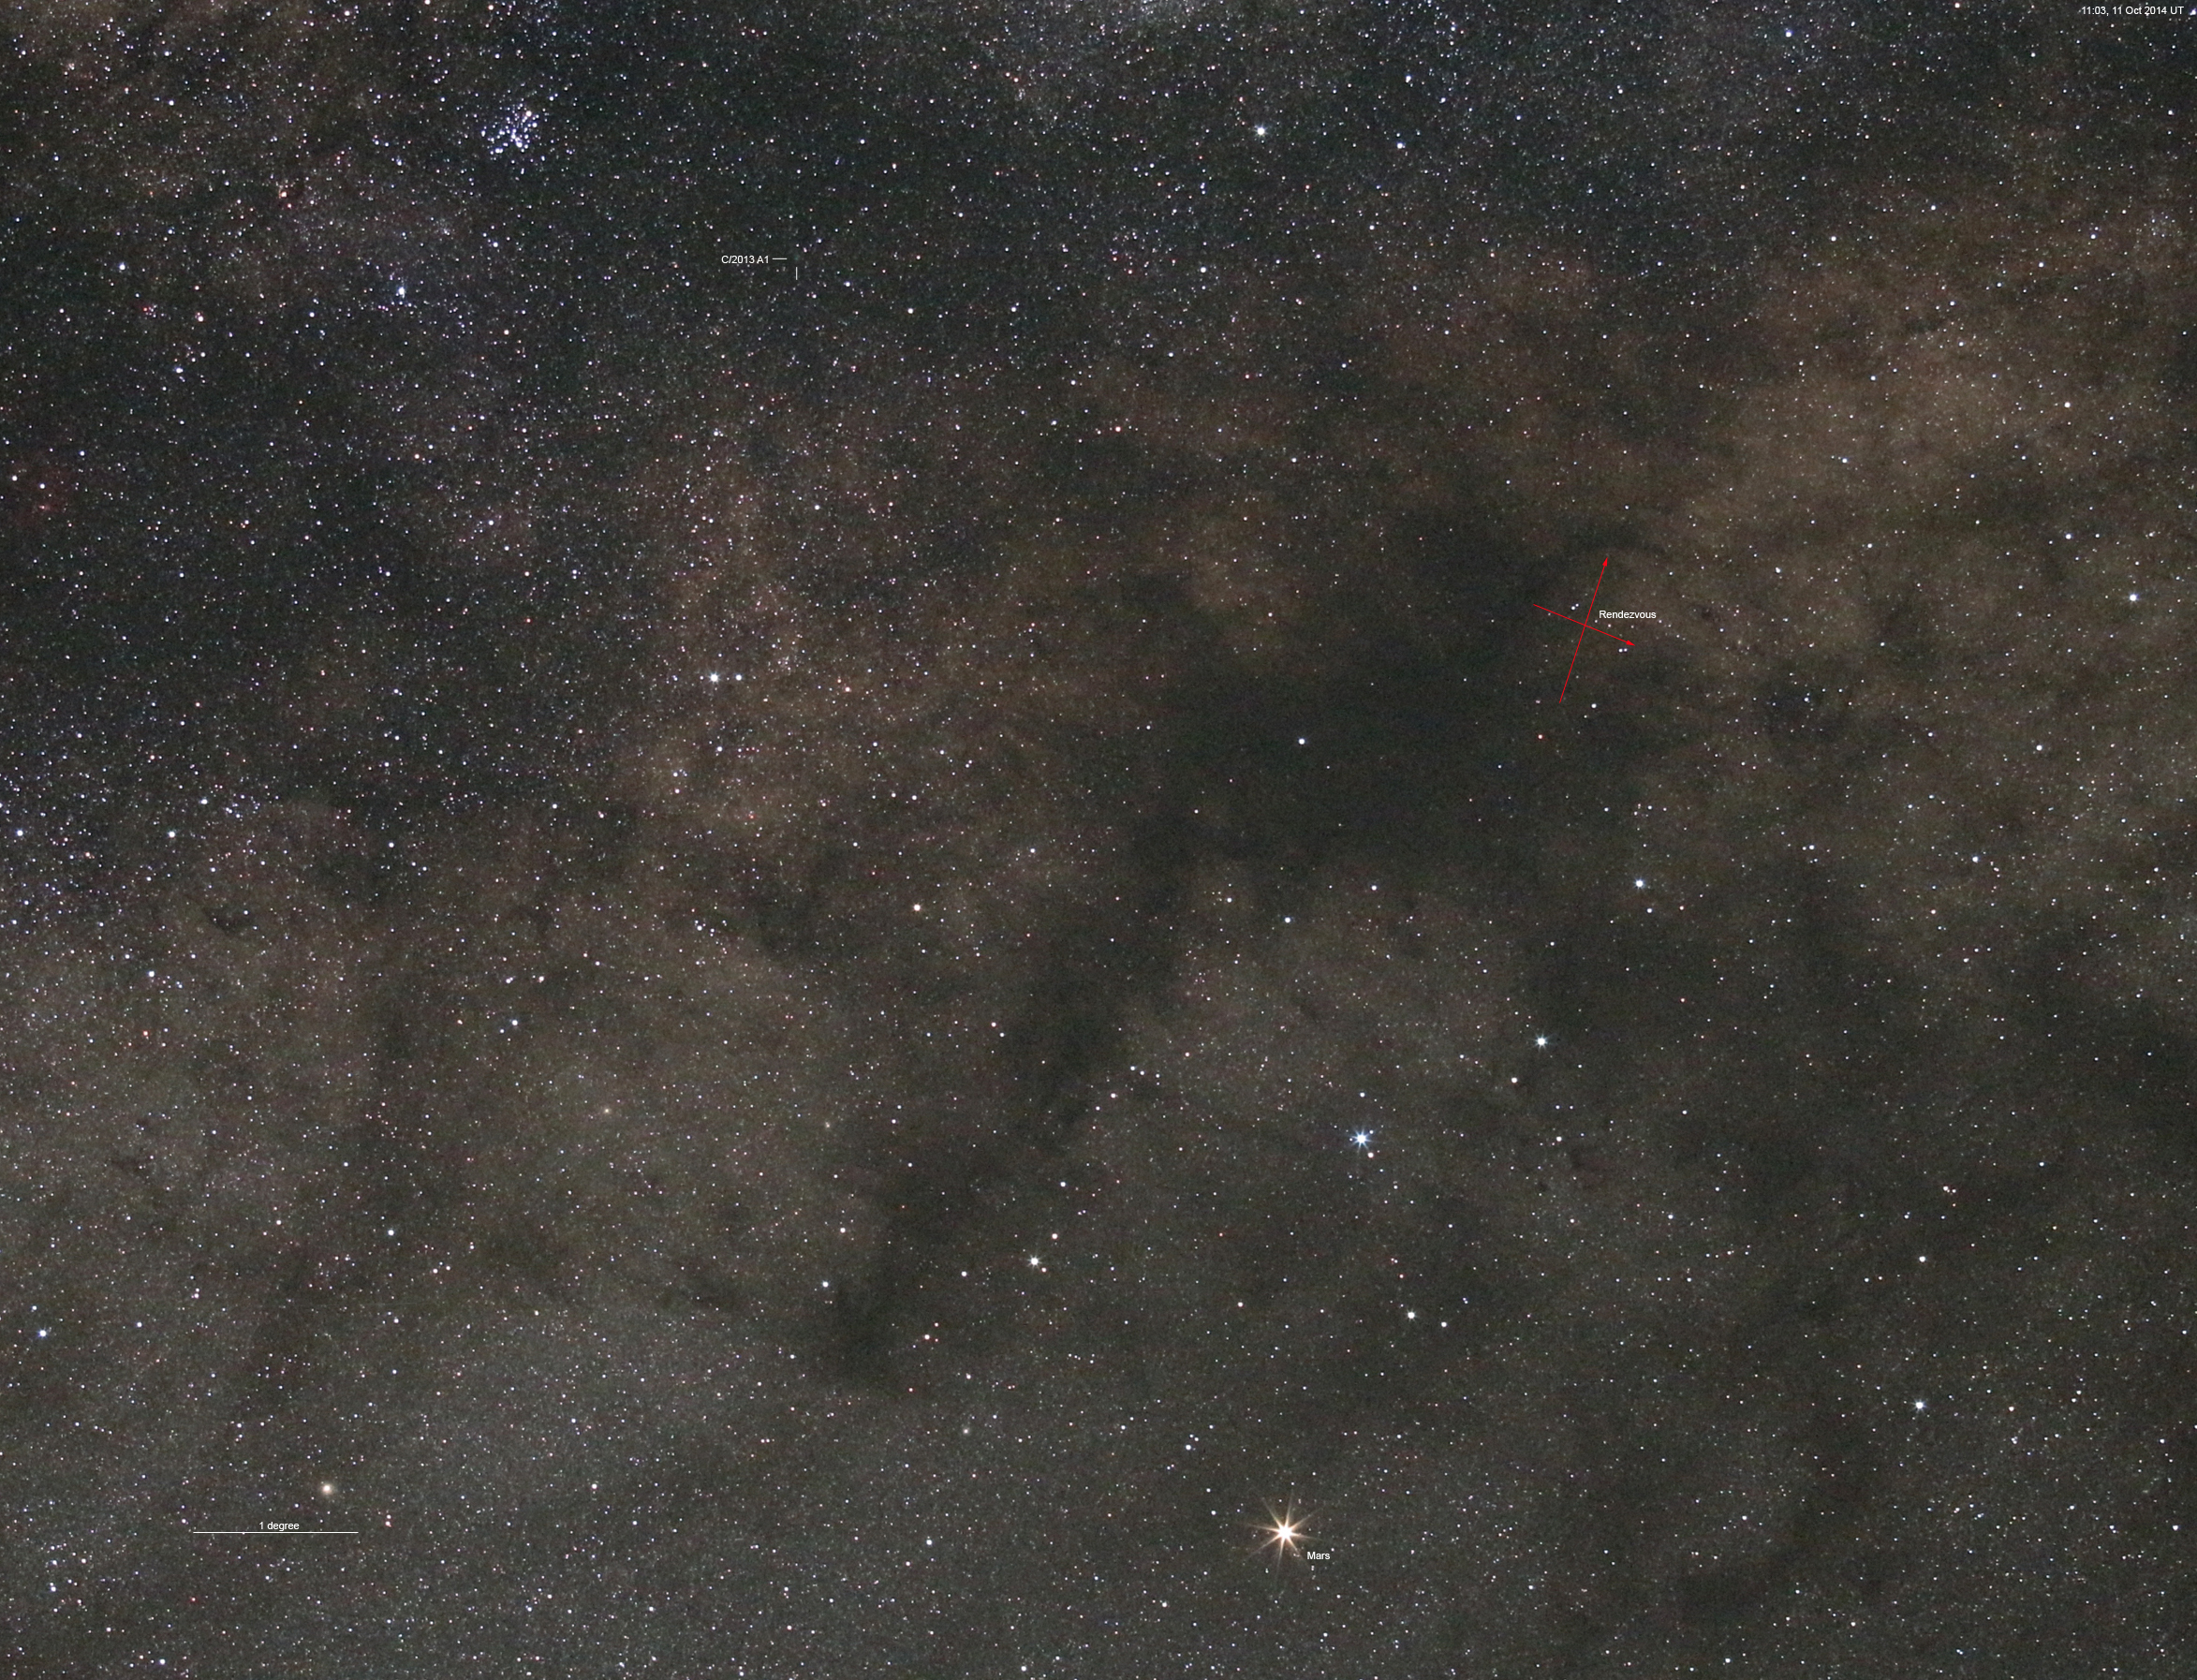 Comet C/2013 A1 Siding Spring and Mars, 11 Oct 2014. Credit: Rob Kaufman